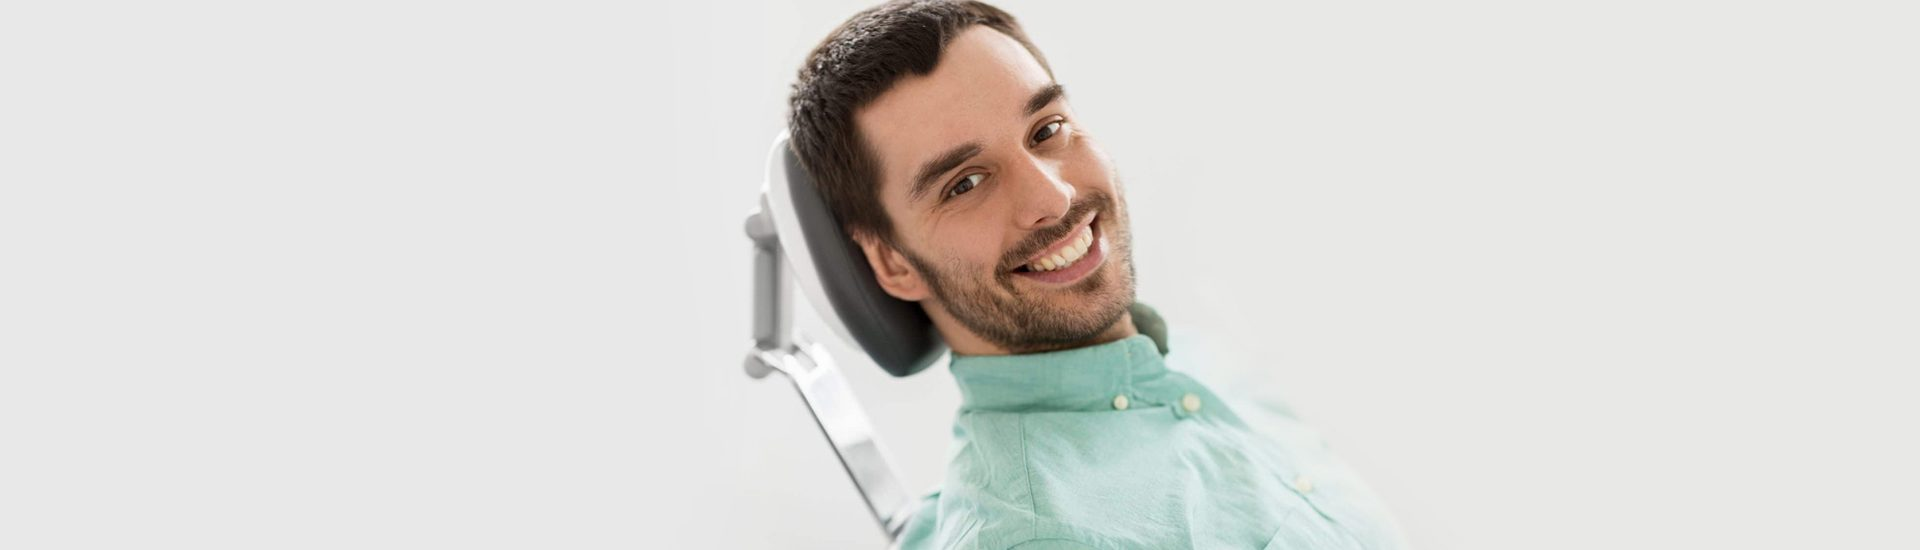 Why You Need a Professional Teeth Whitening Treatment?